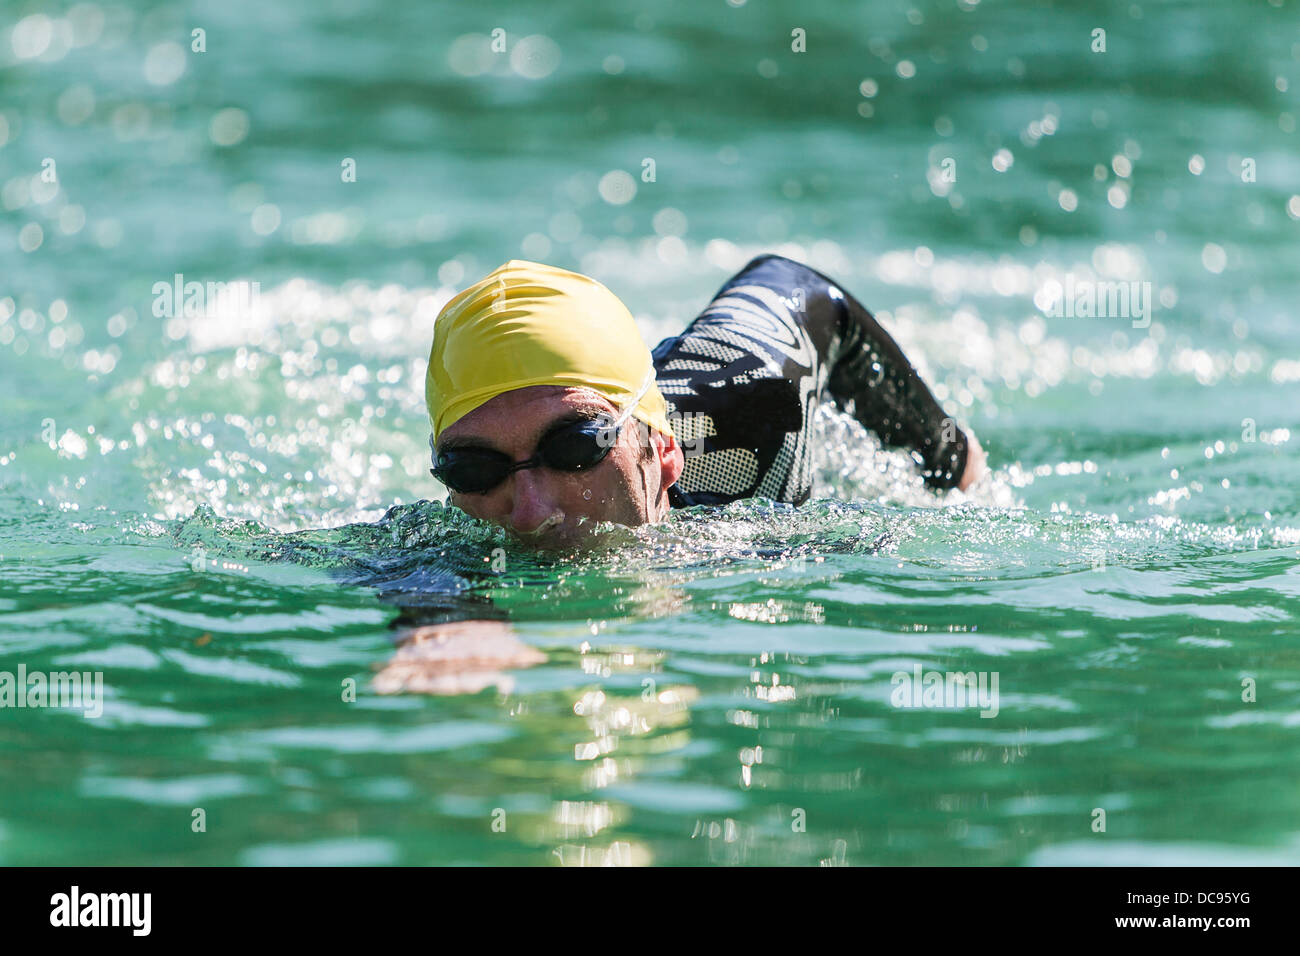 Male triathlete M39 during swimming training, Germany, Europe - Stock Image